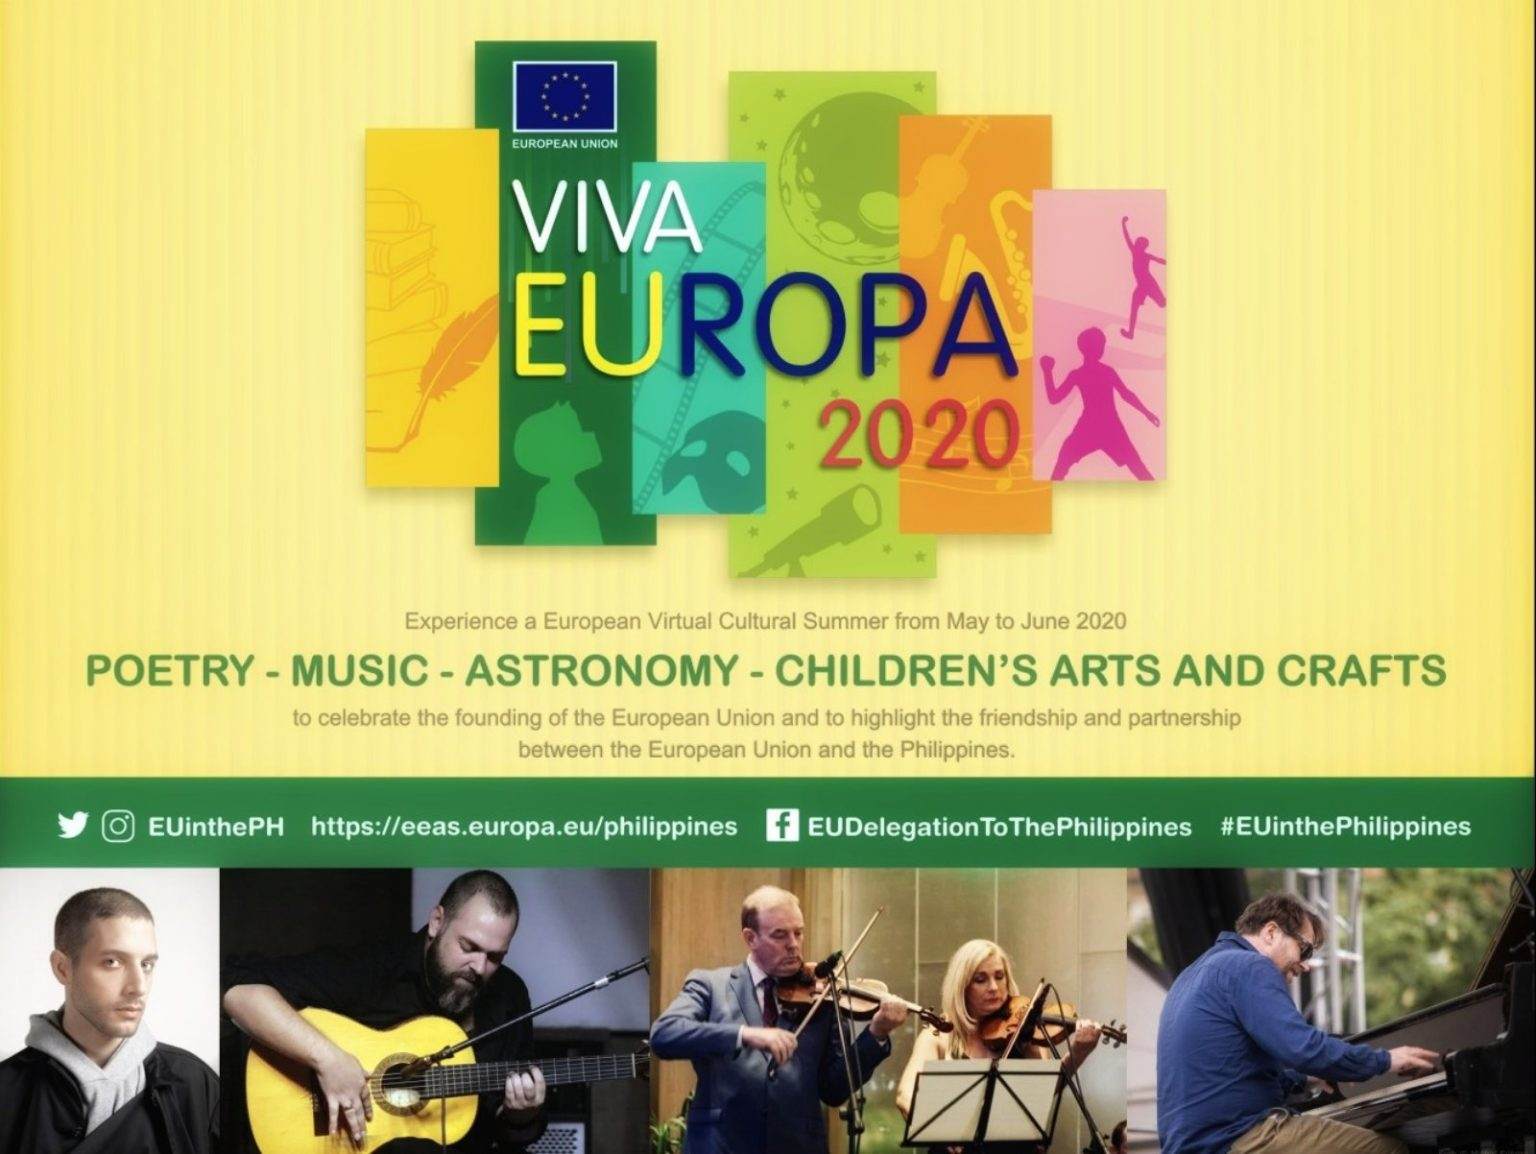 Euro-Pinoy Concert sets to take center stage on May 29 in Viva Europa 2020